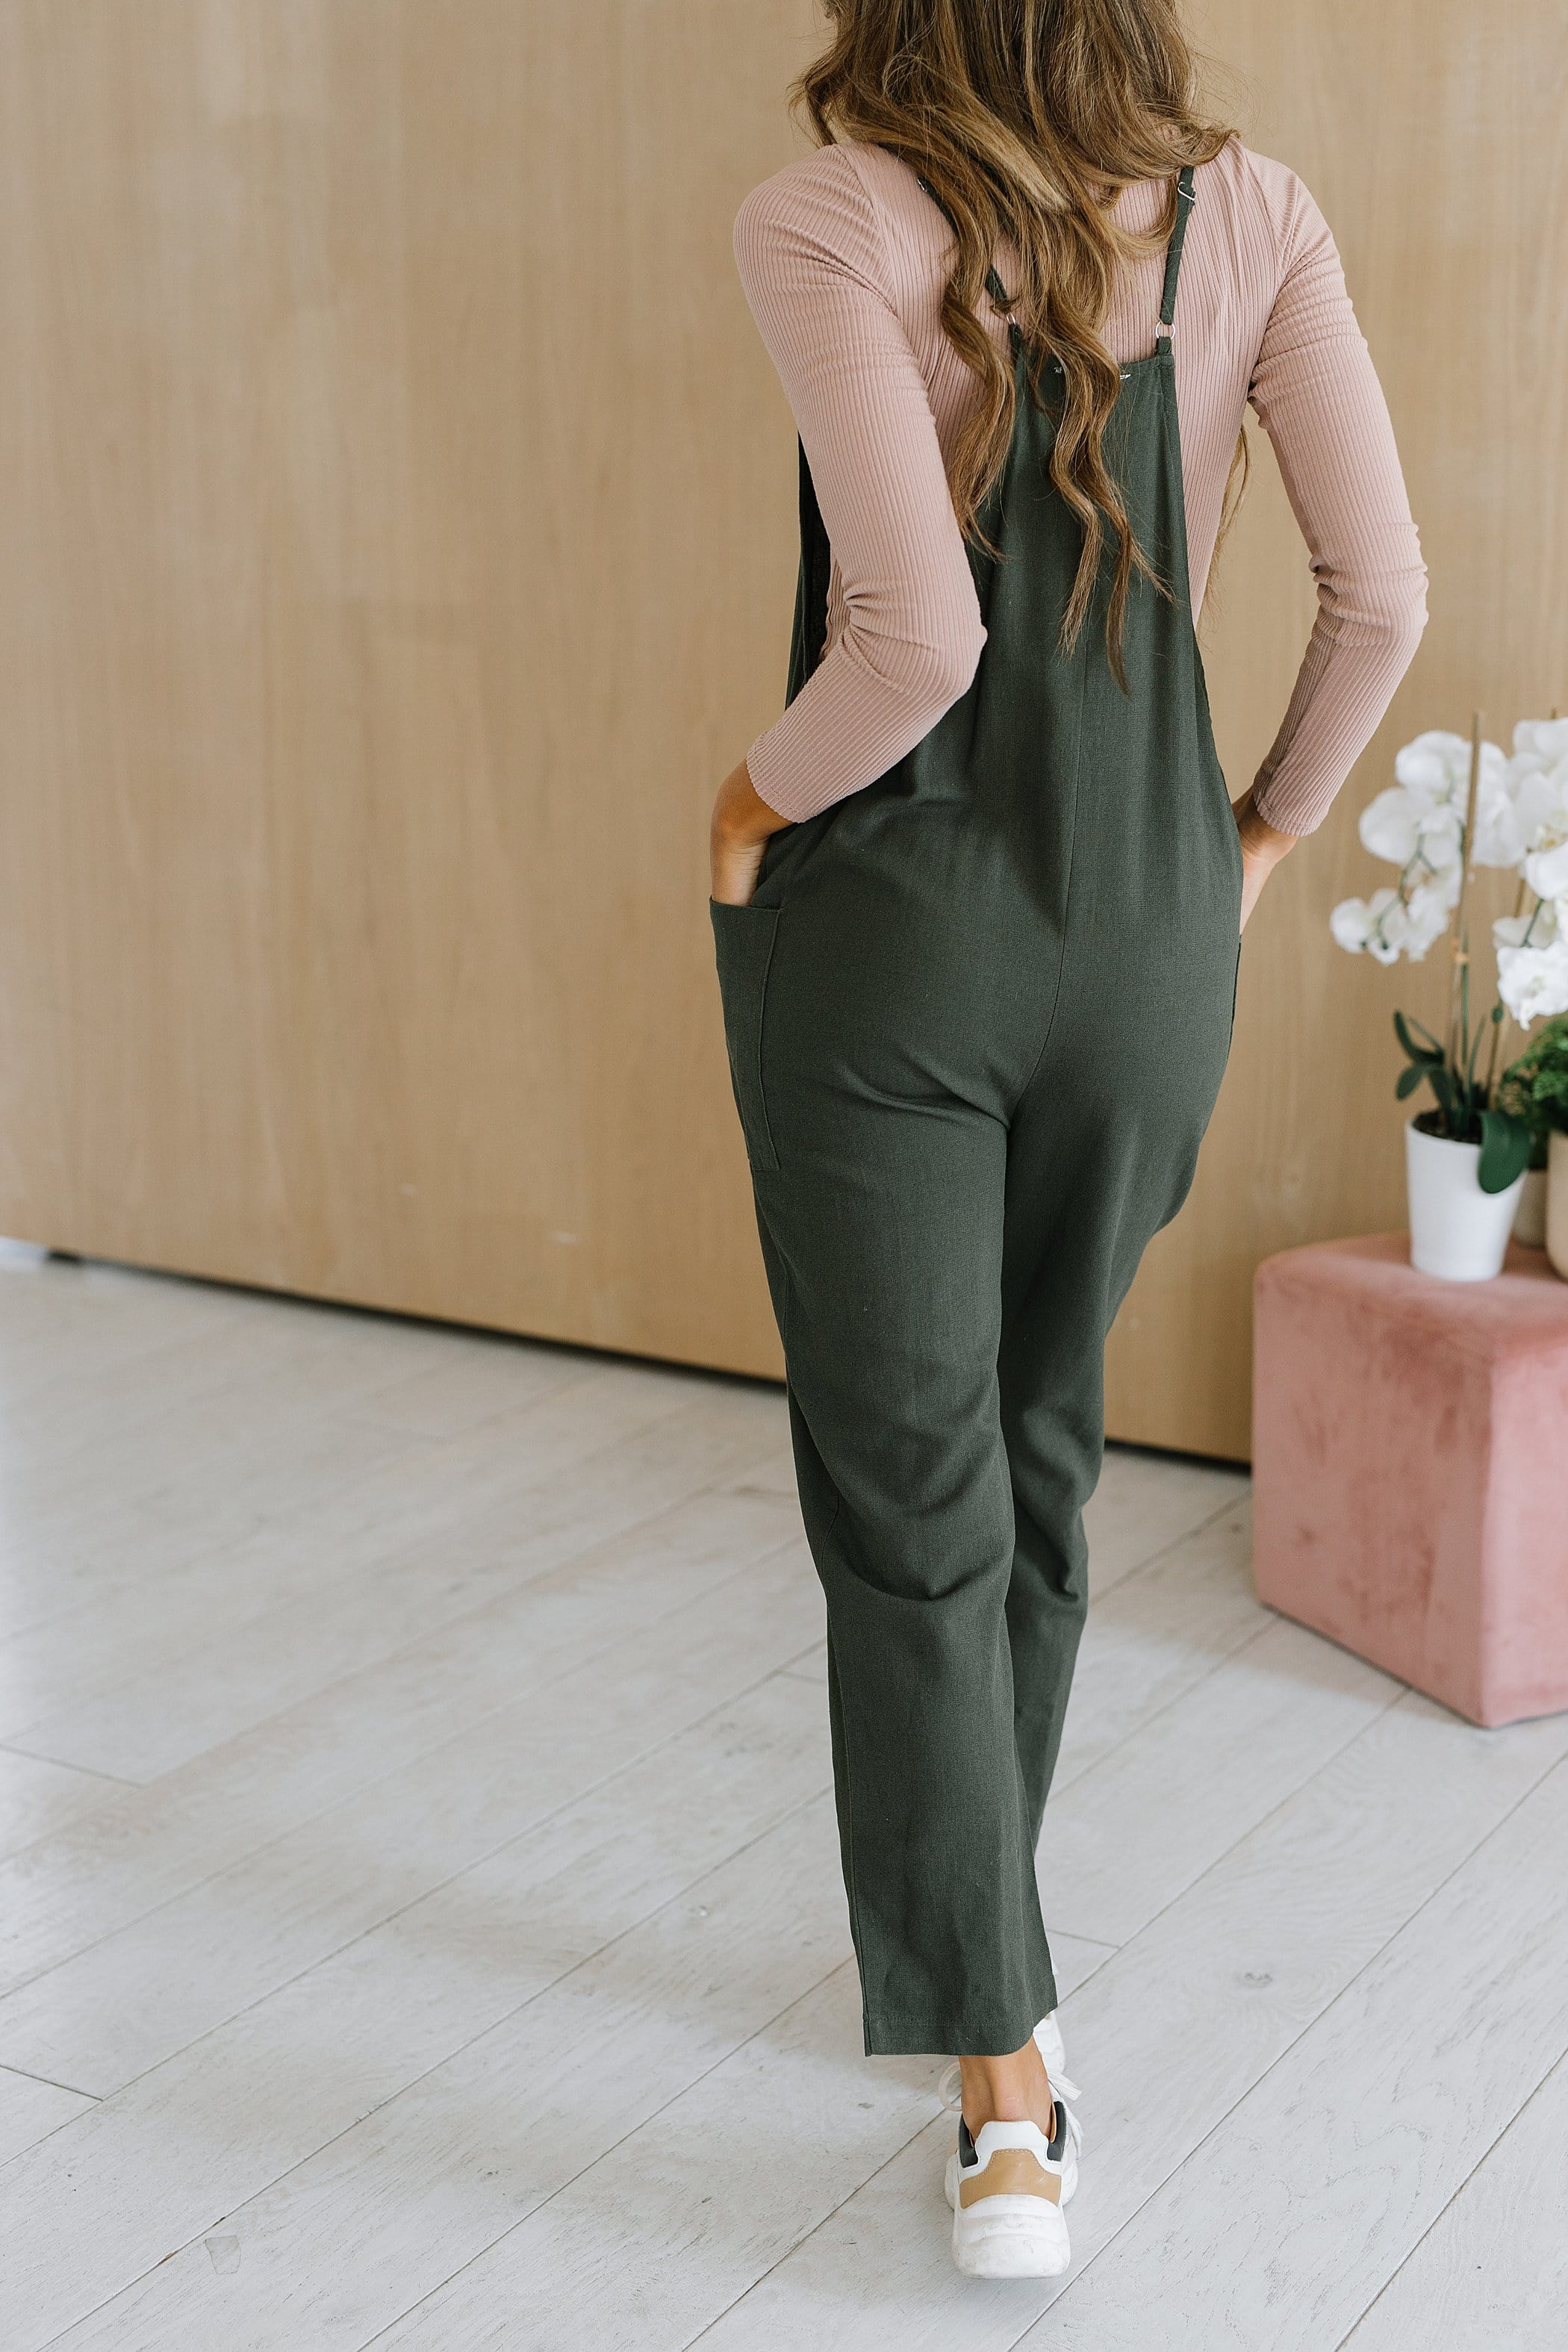 The Morrow Romper in Olive